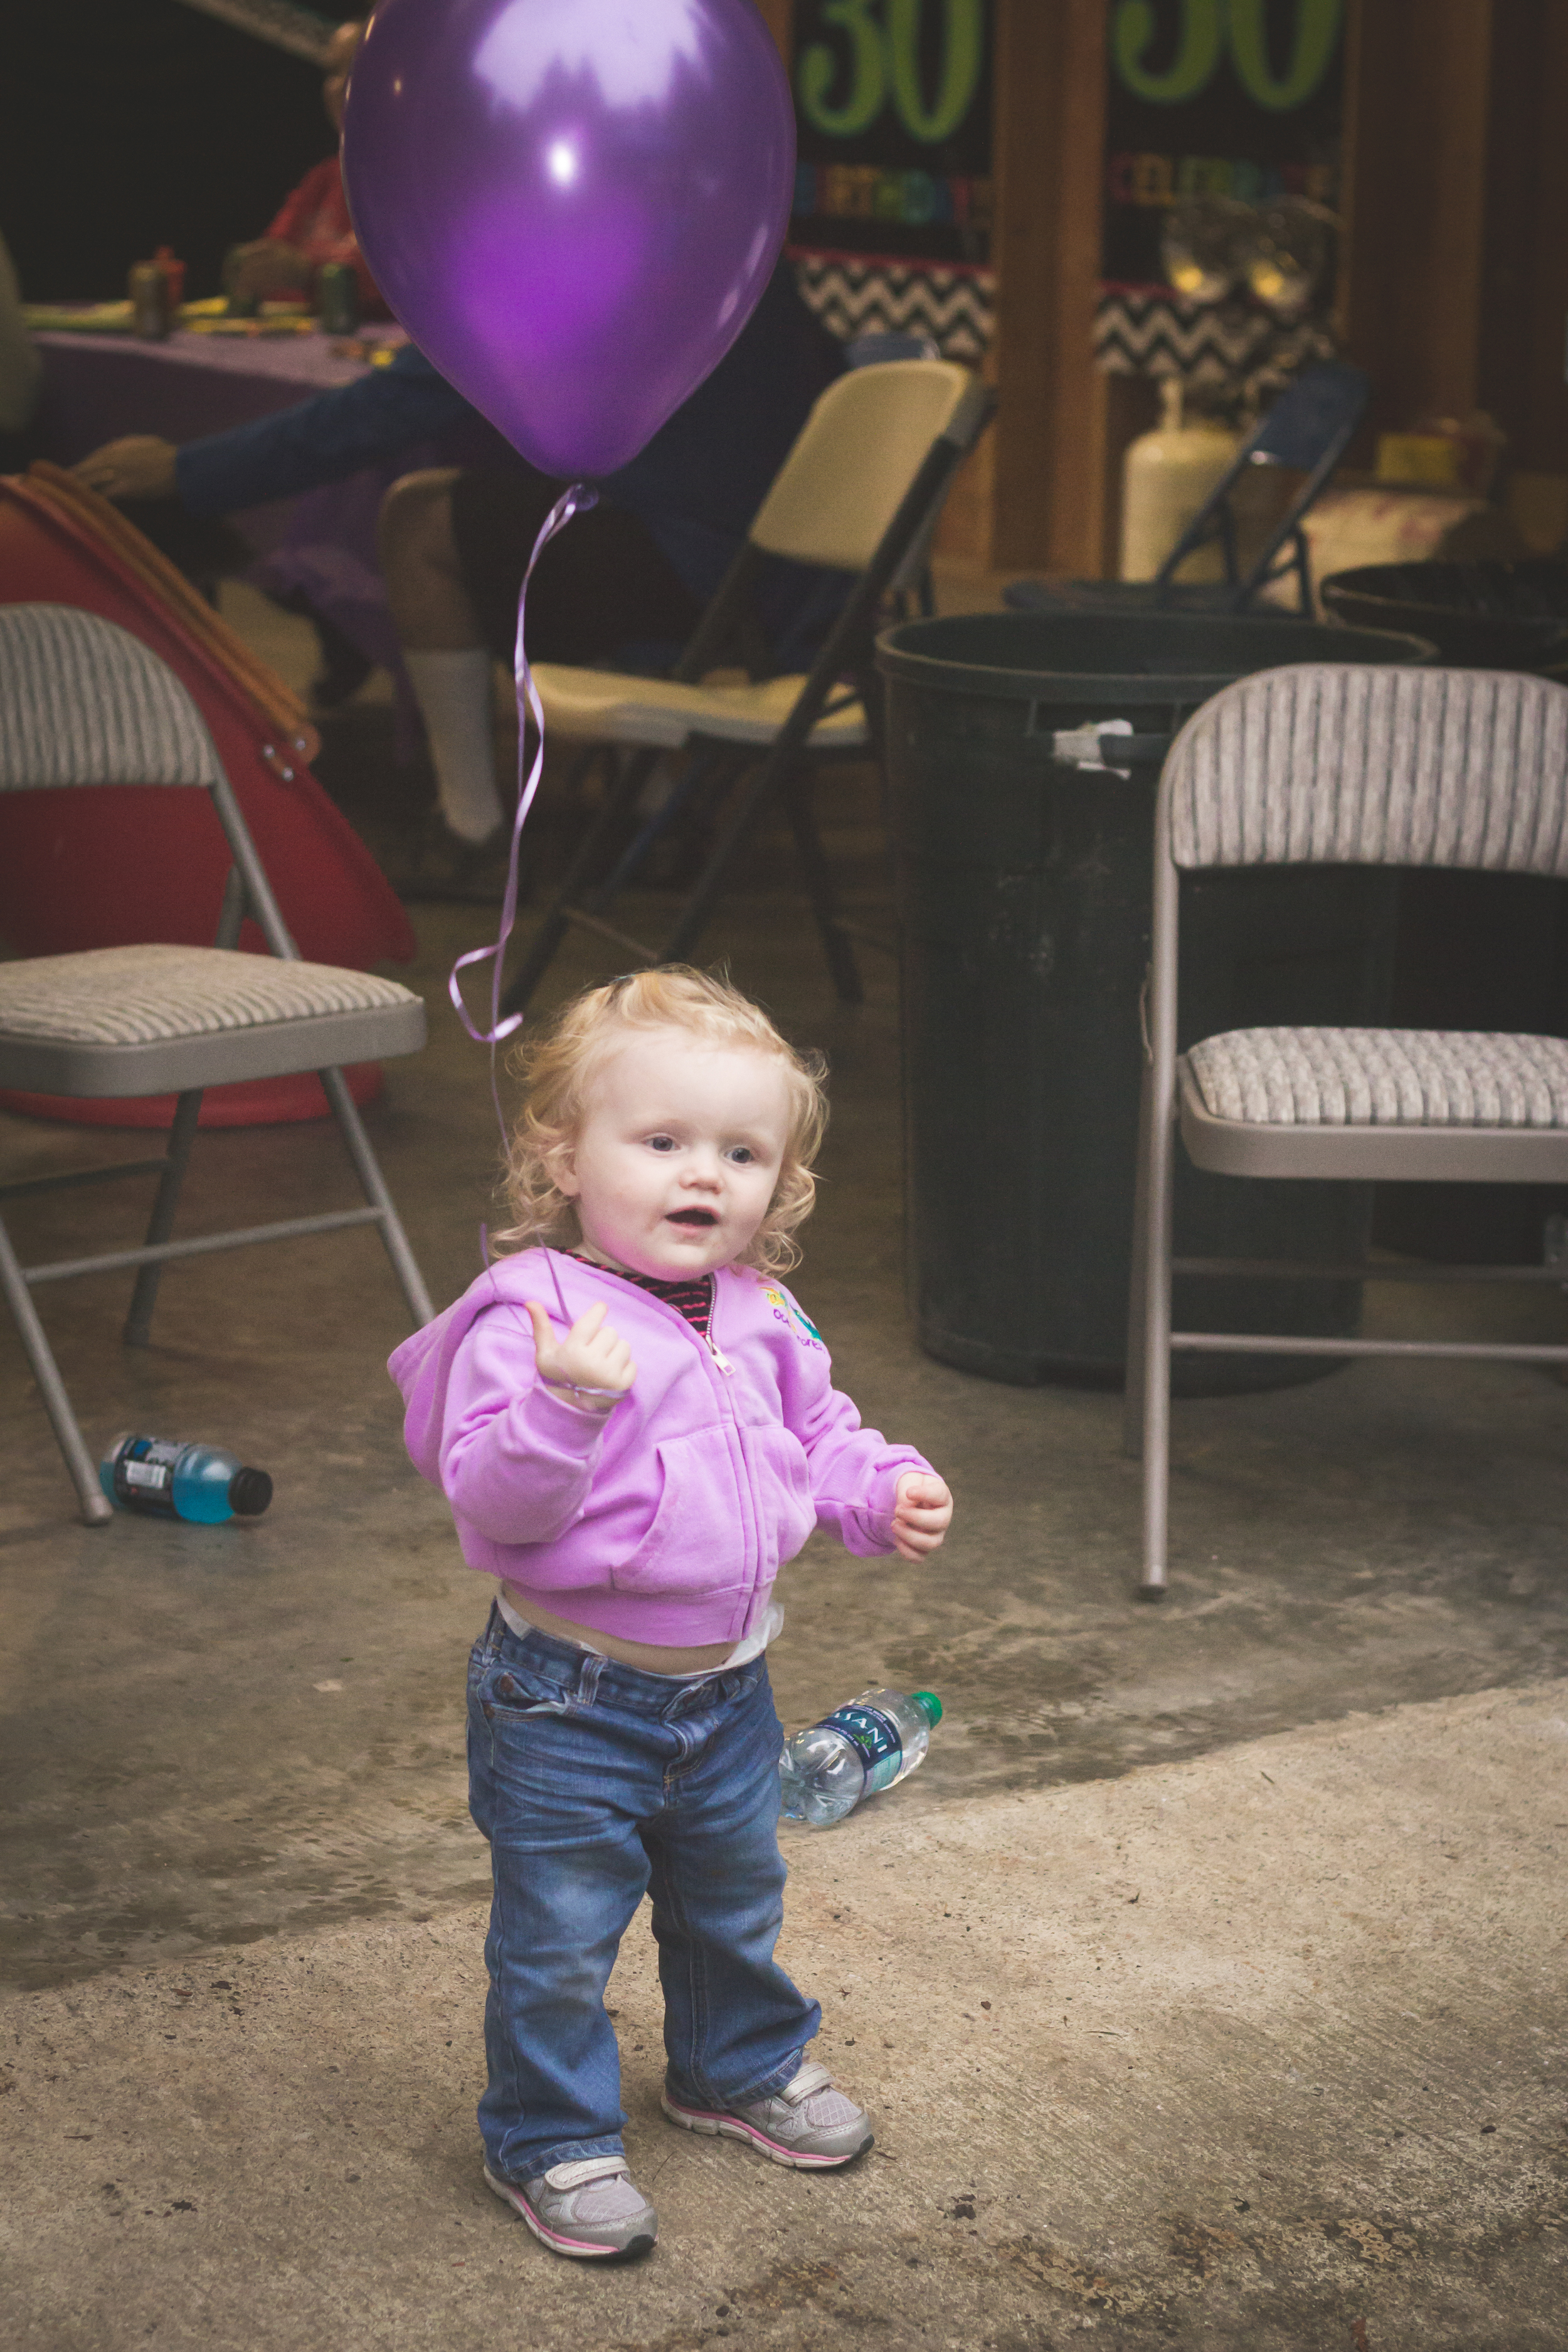 Balloons are a baby's best friend!